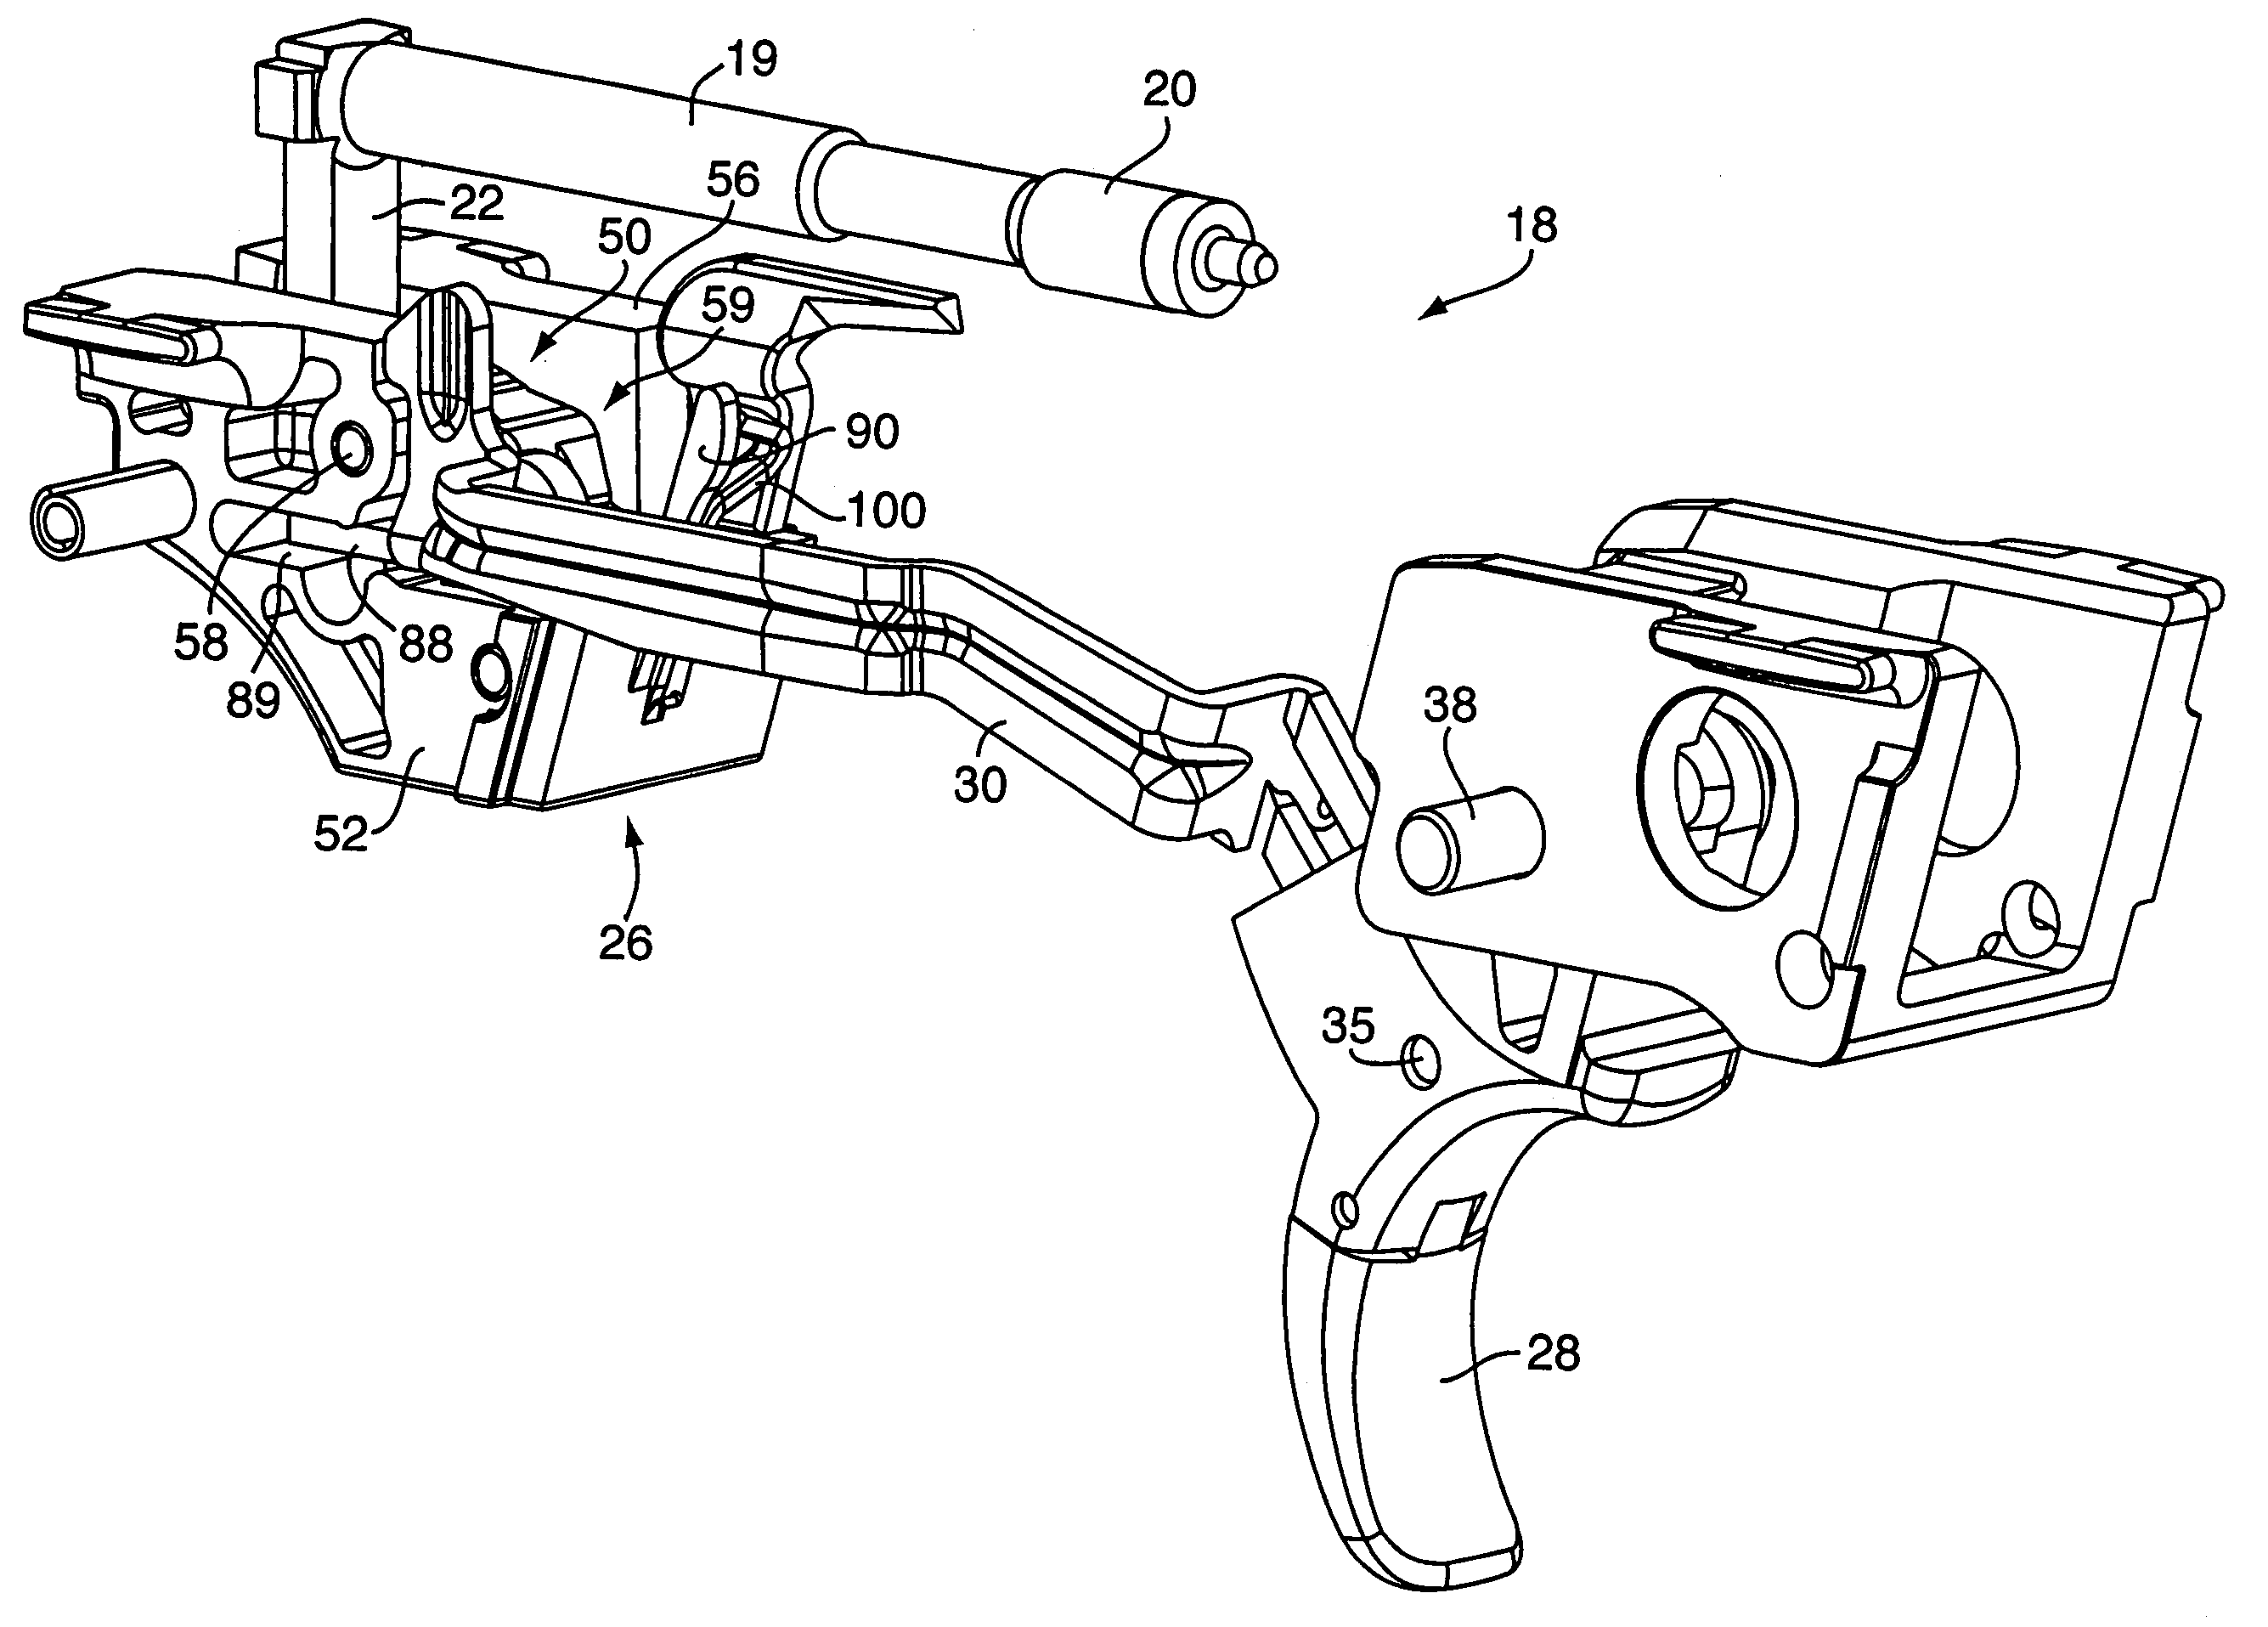 patent us7617628 - fire control mechanism for a firearm